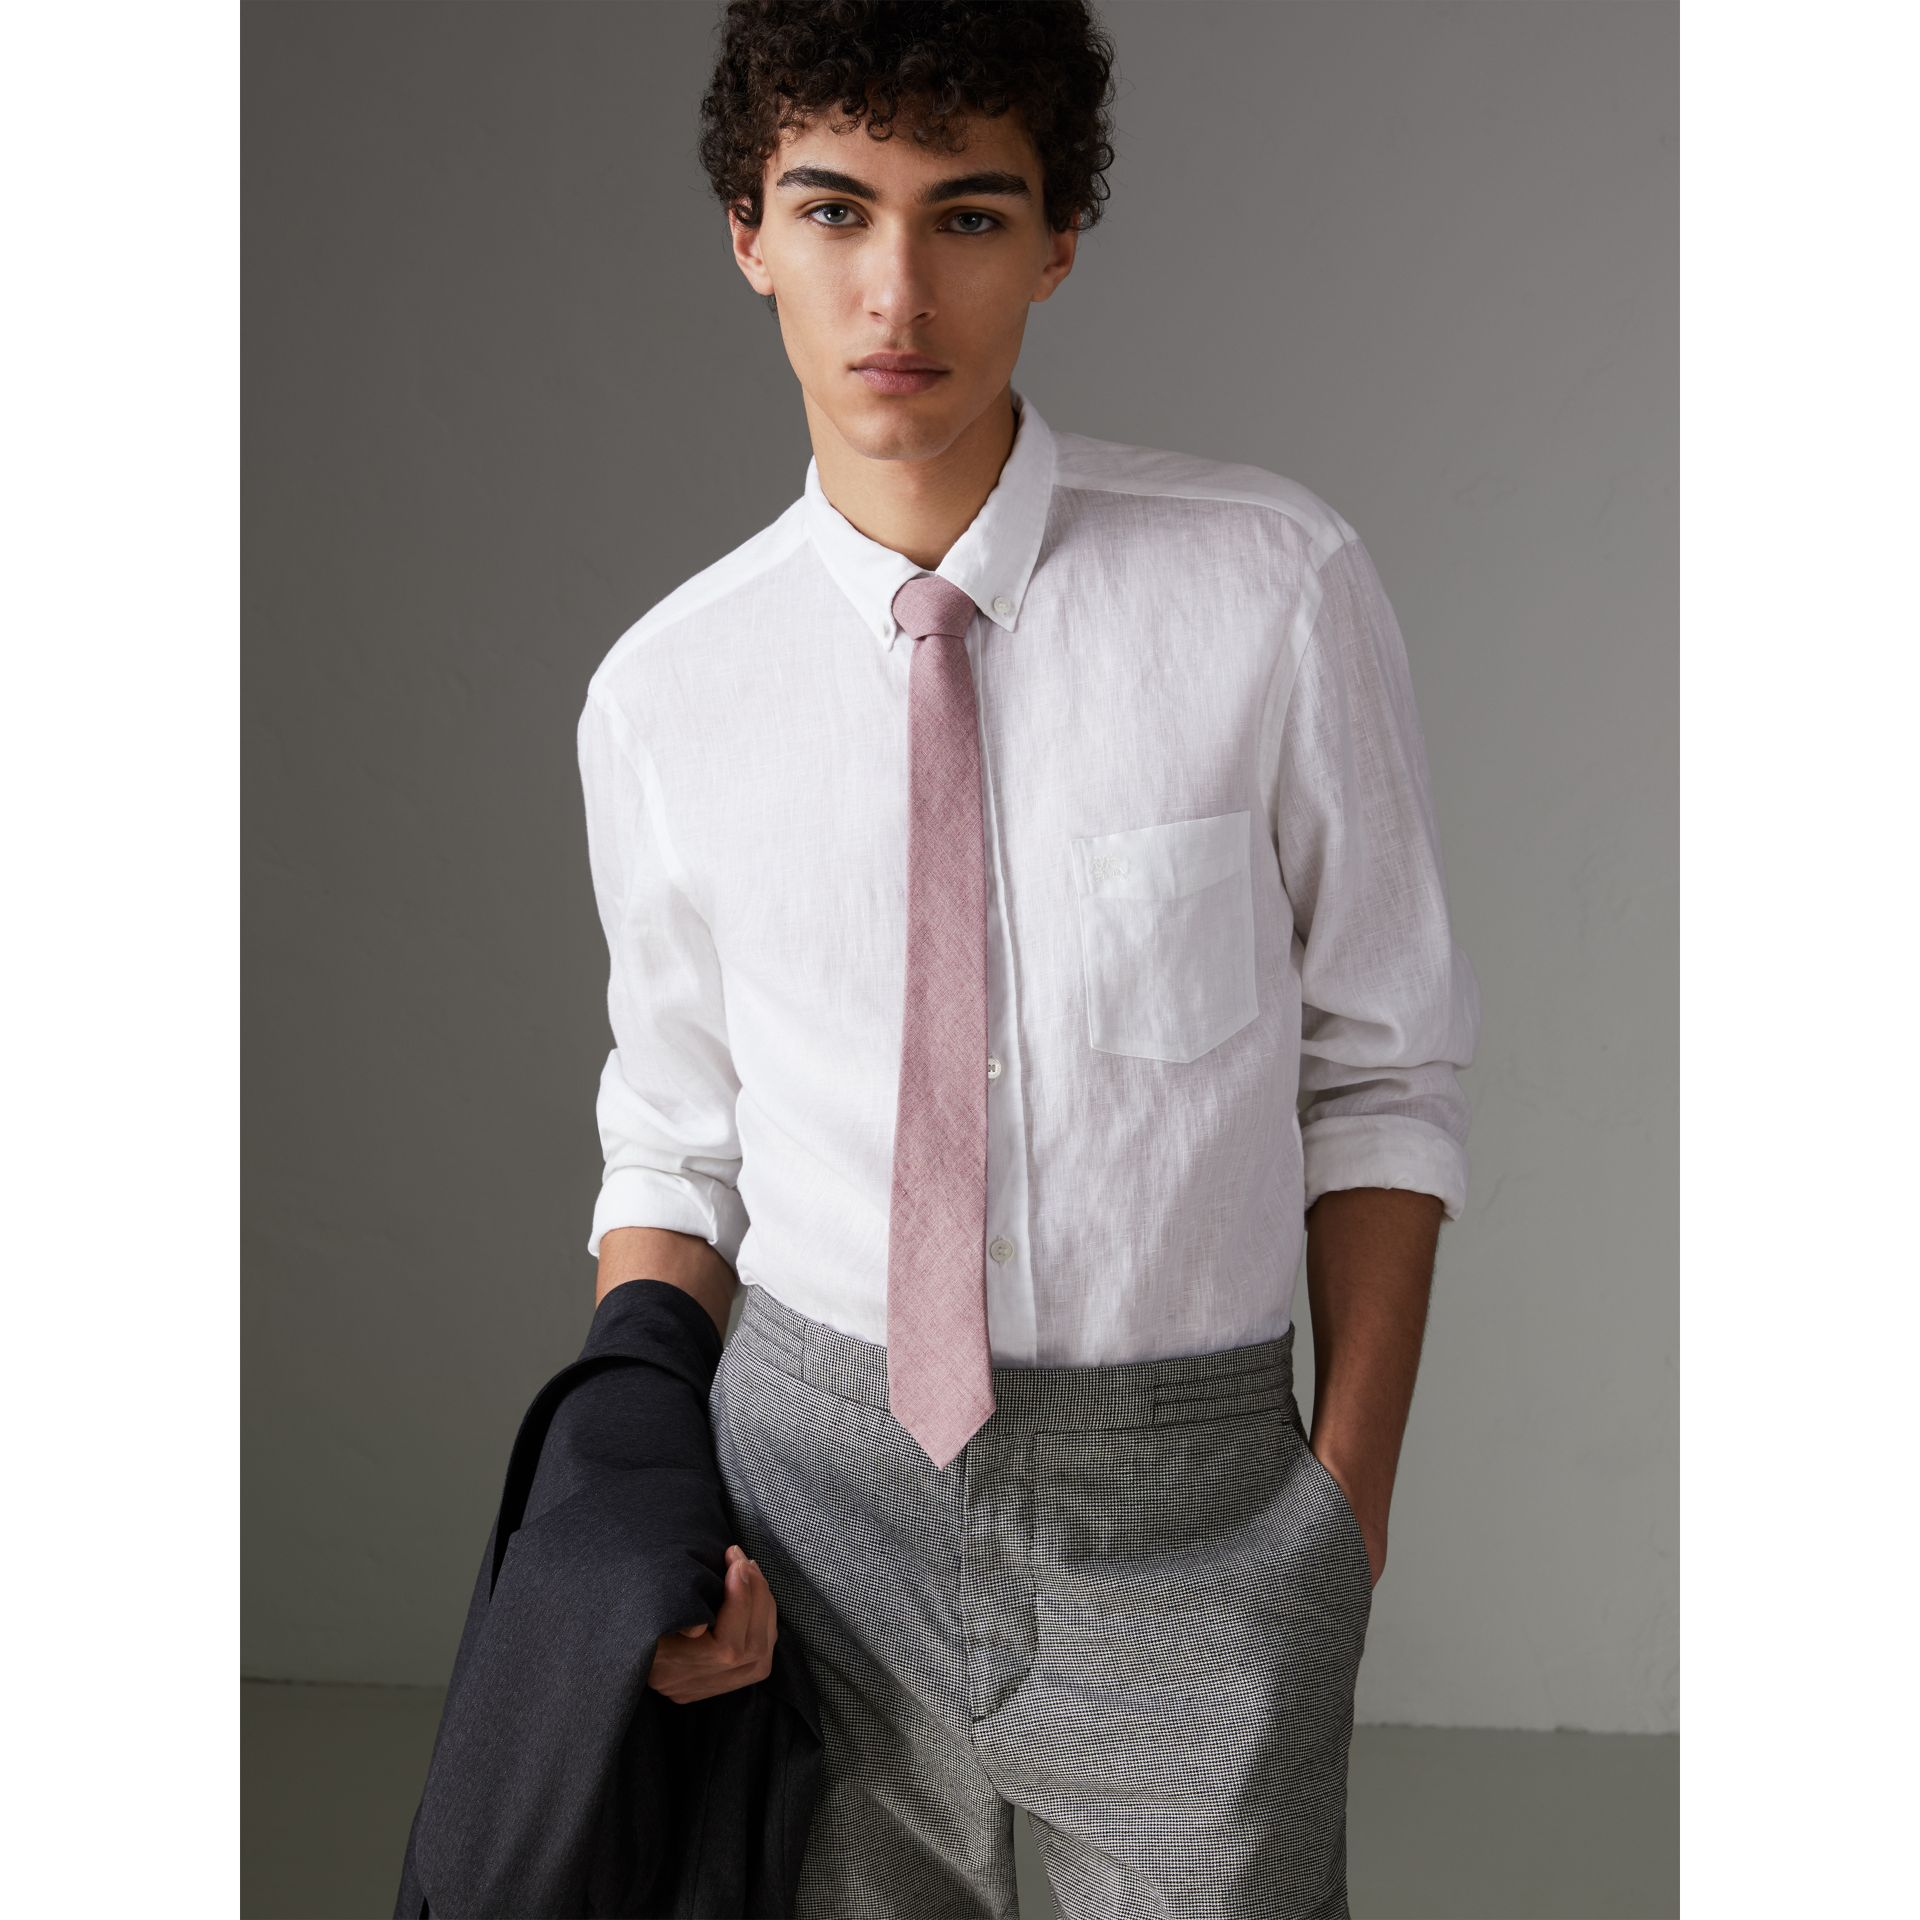 Slim Cut Linen Tie in Pink Heather - Men | Burberry Singapore - gallery image 2